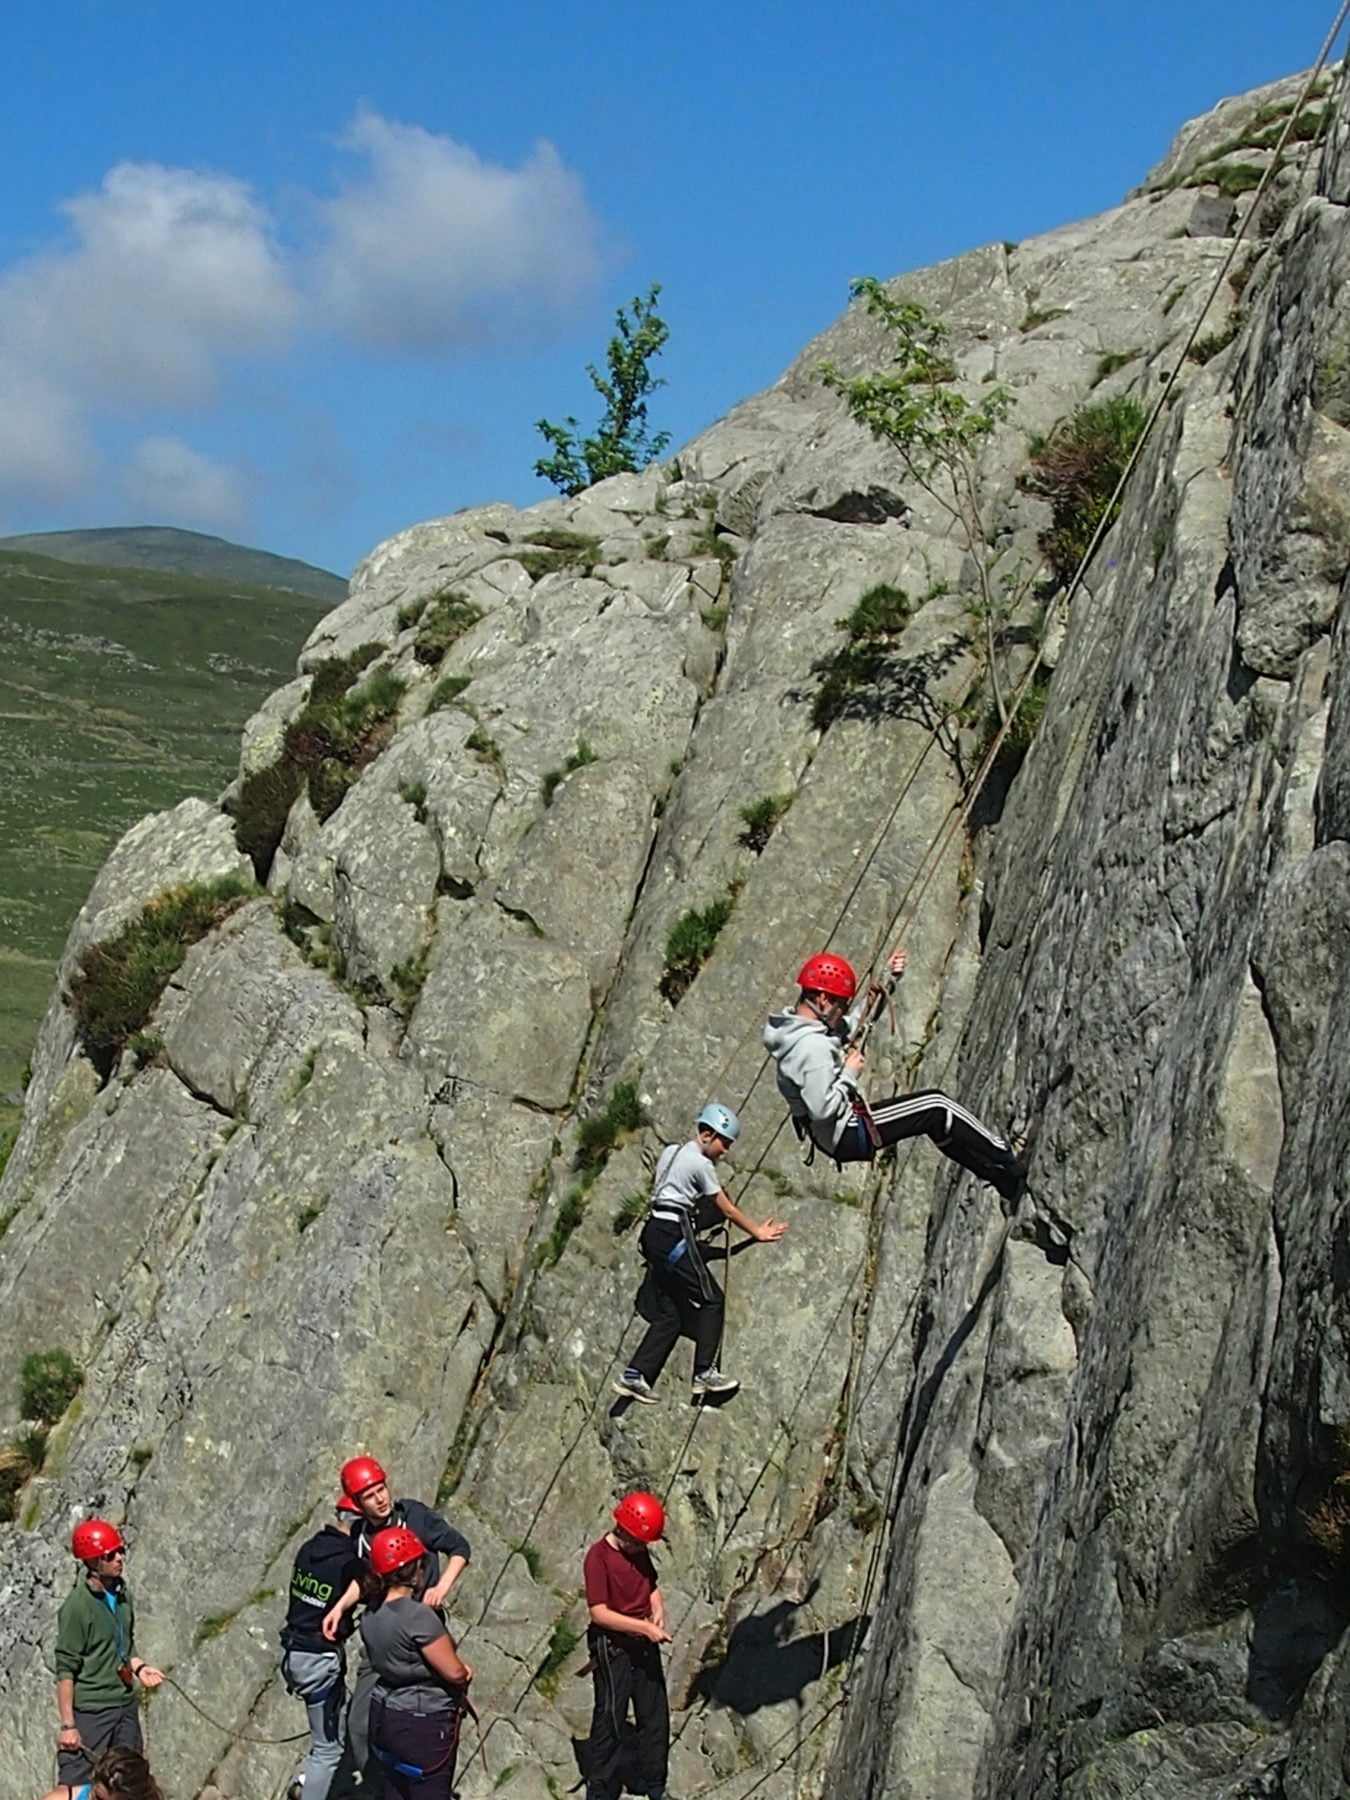 Group abseiling & climbing on single pitch cliff, Ogwen Valley, Wales